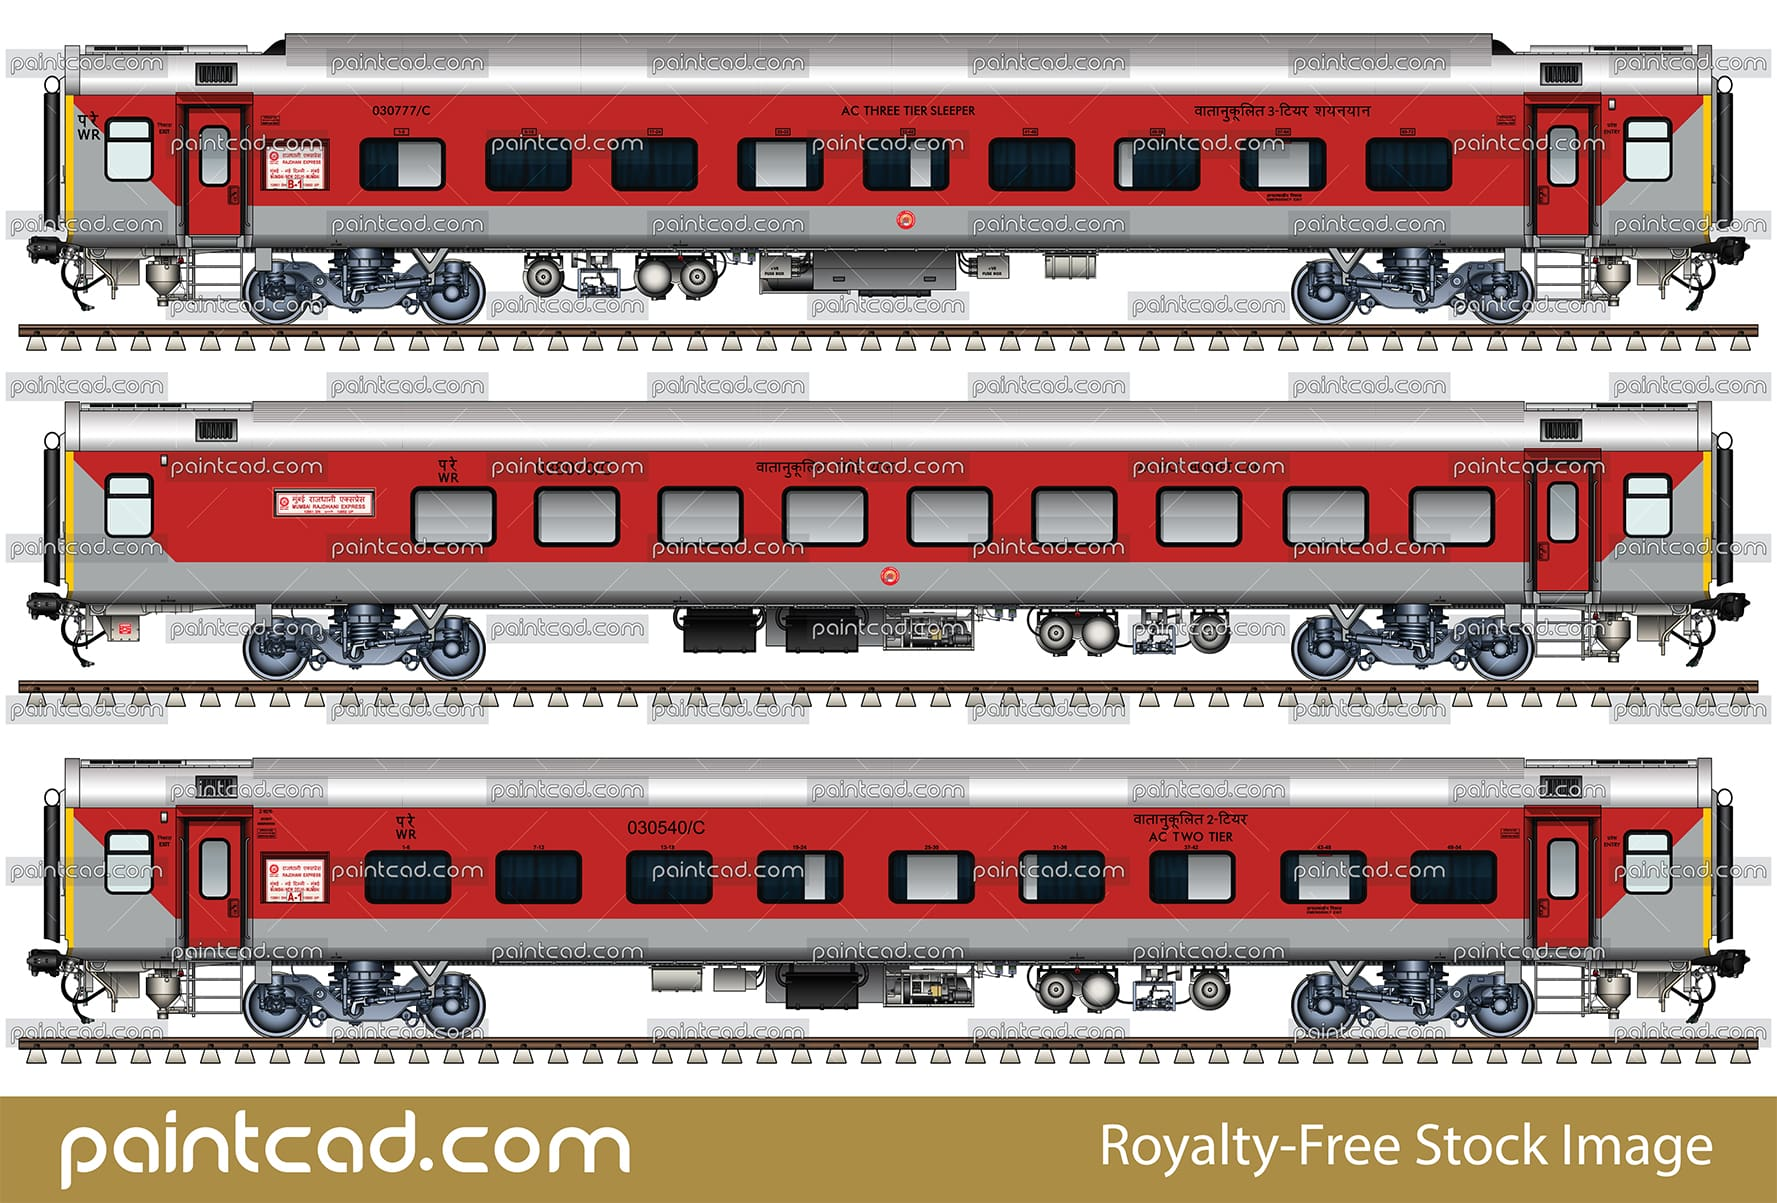 LHB cars from Rajdhani and Gujarat Sampark Kranti express - vector illustration